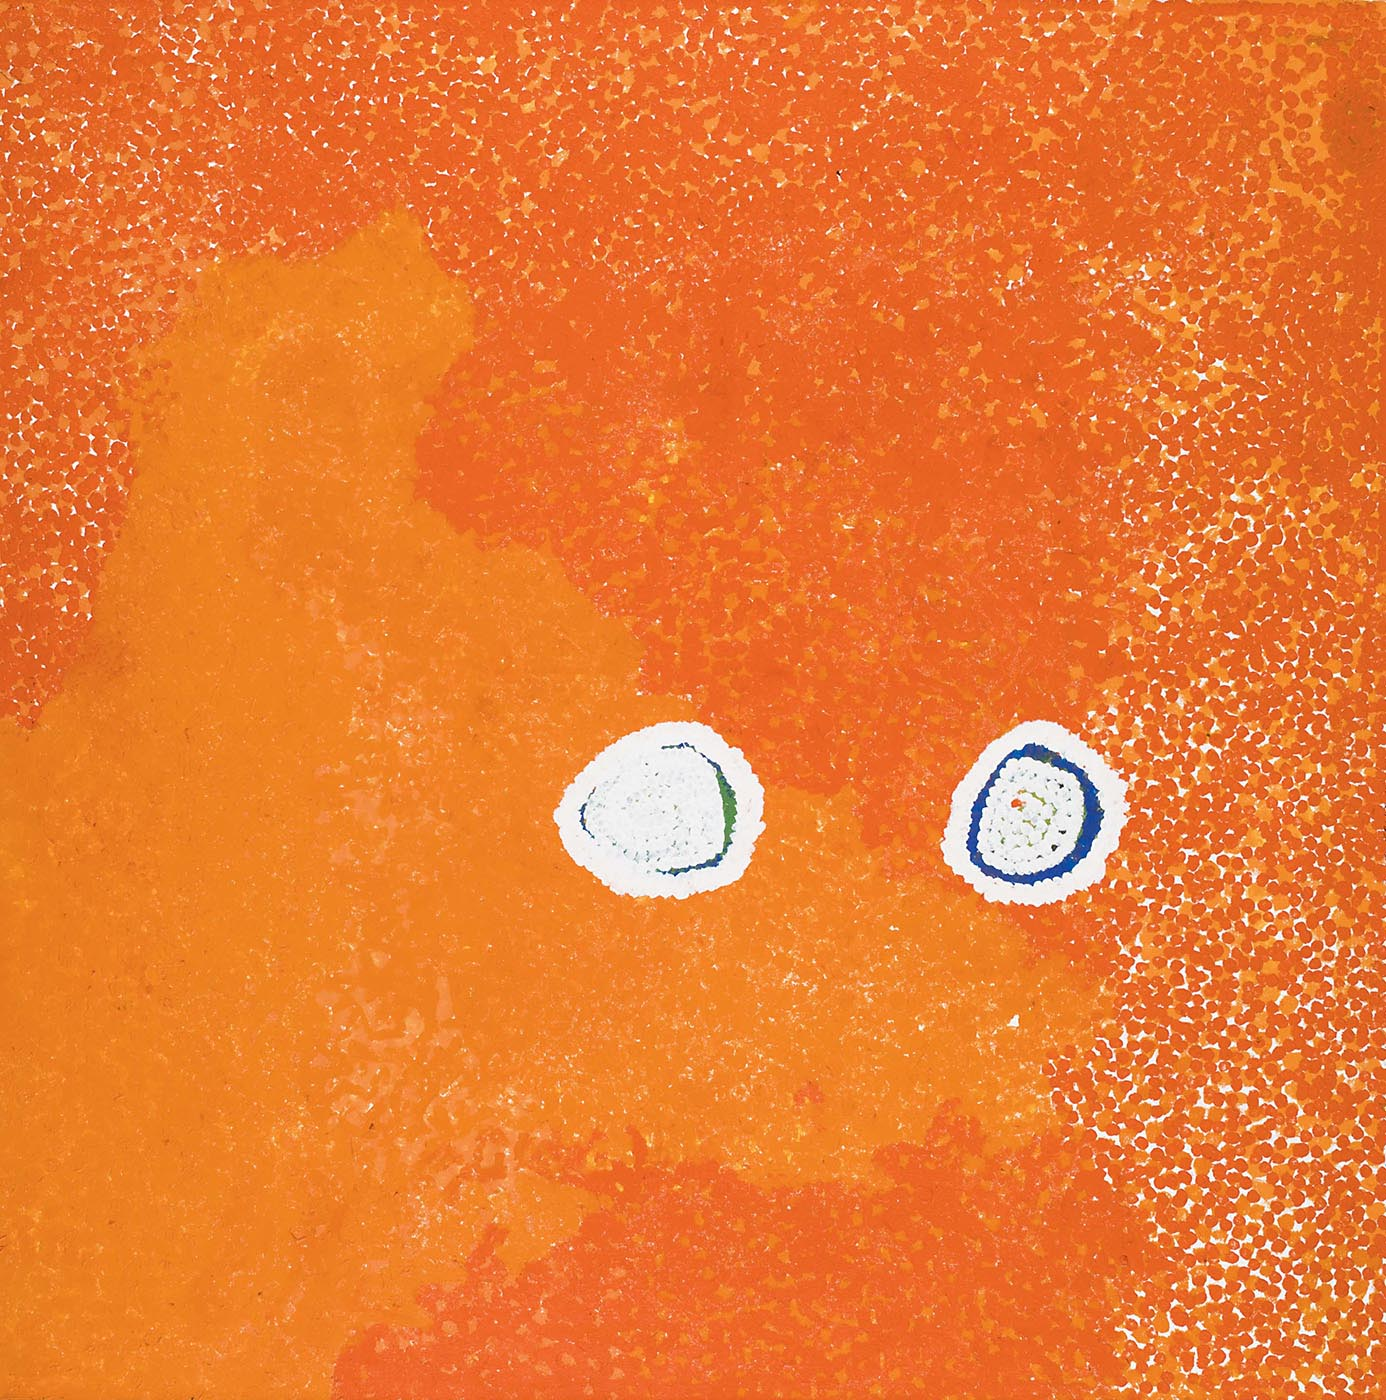 An orange toned textured painting on canvas with two white edged ovals in a horizontal line. The background is dark orange dotted in the upper right corner and lighter in lower left. The two ovals have a blue green background edged with white dots, with a central dotted white section leaving a very thin section of the blue showing. - click to view larger image